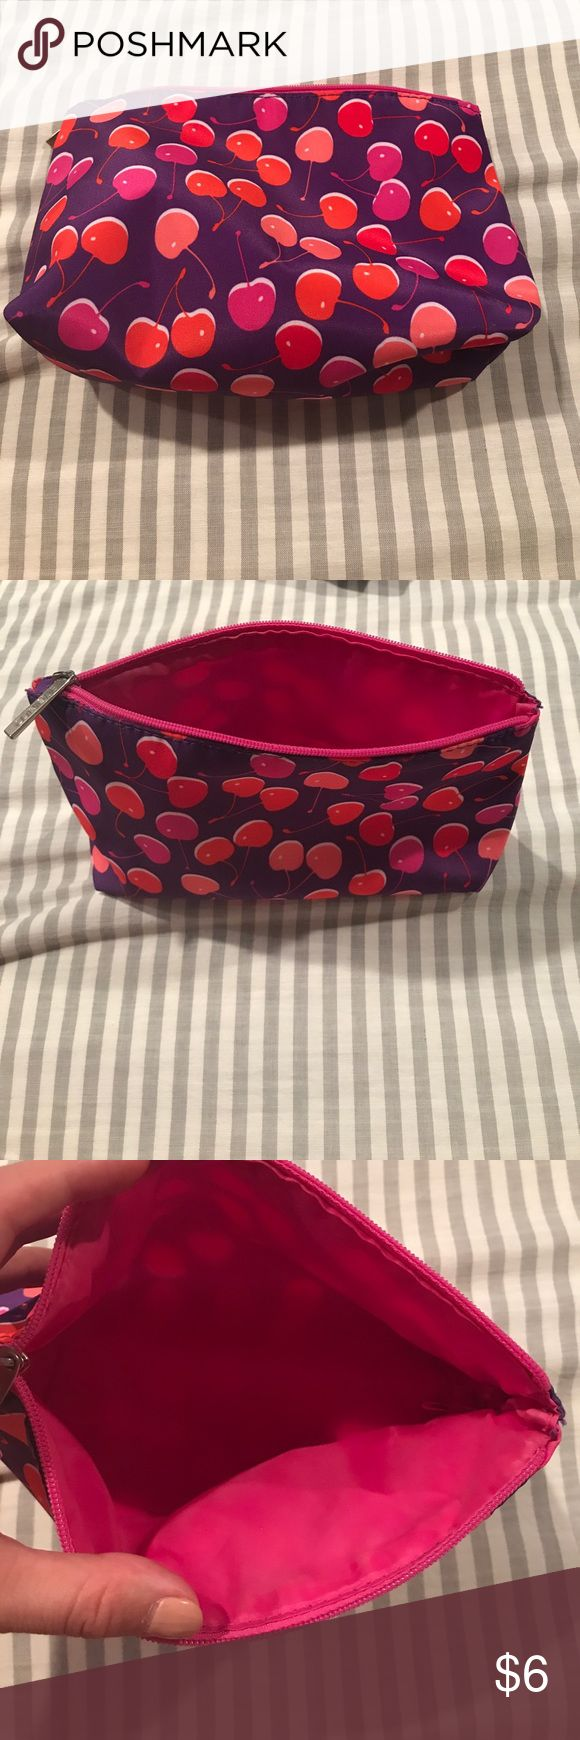 Clinique make up bag Gently used Clinique makeup bag Clinique Bags Cosmetic Bags & Cases